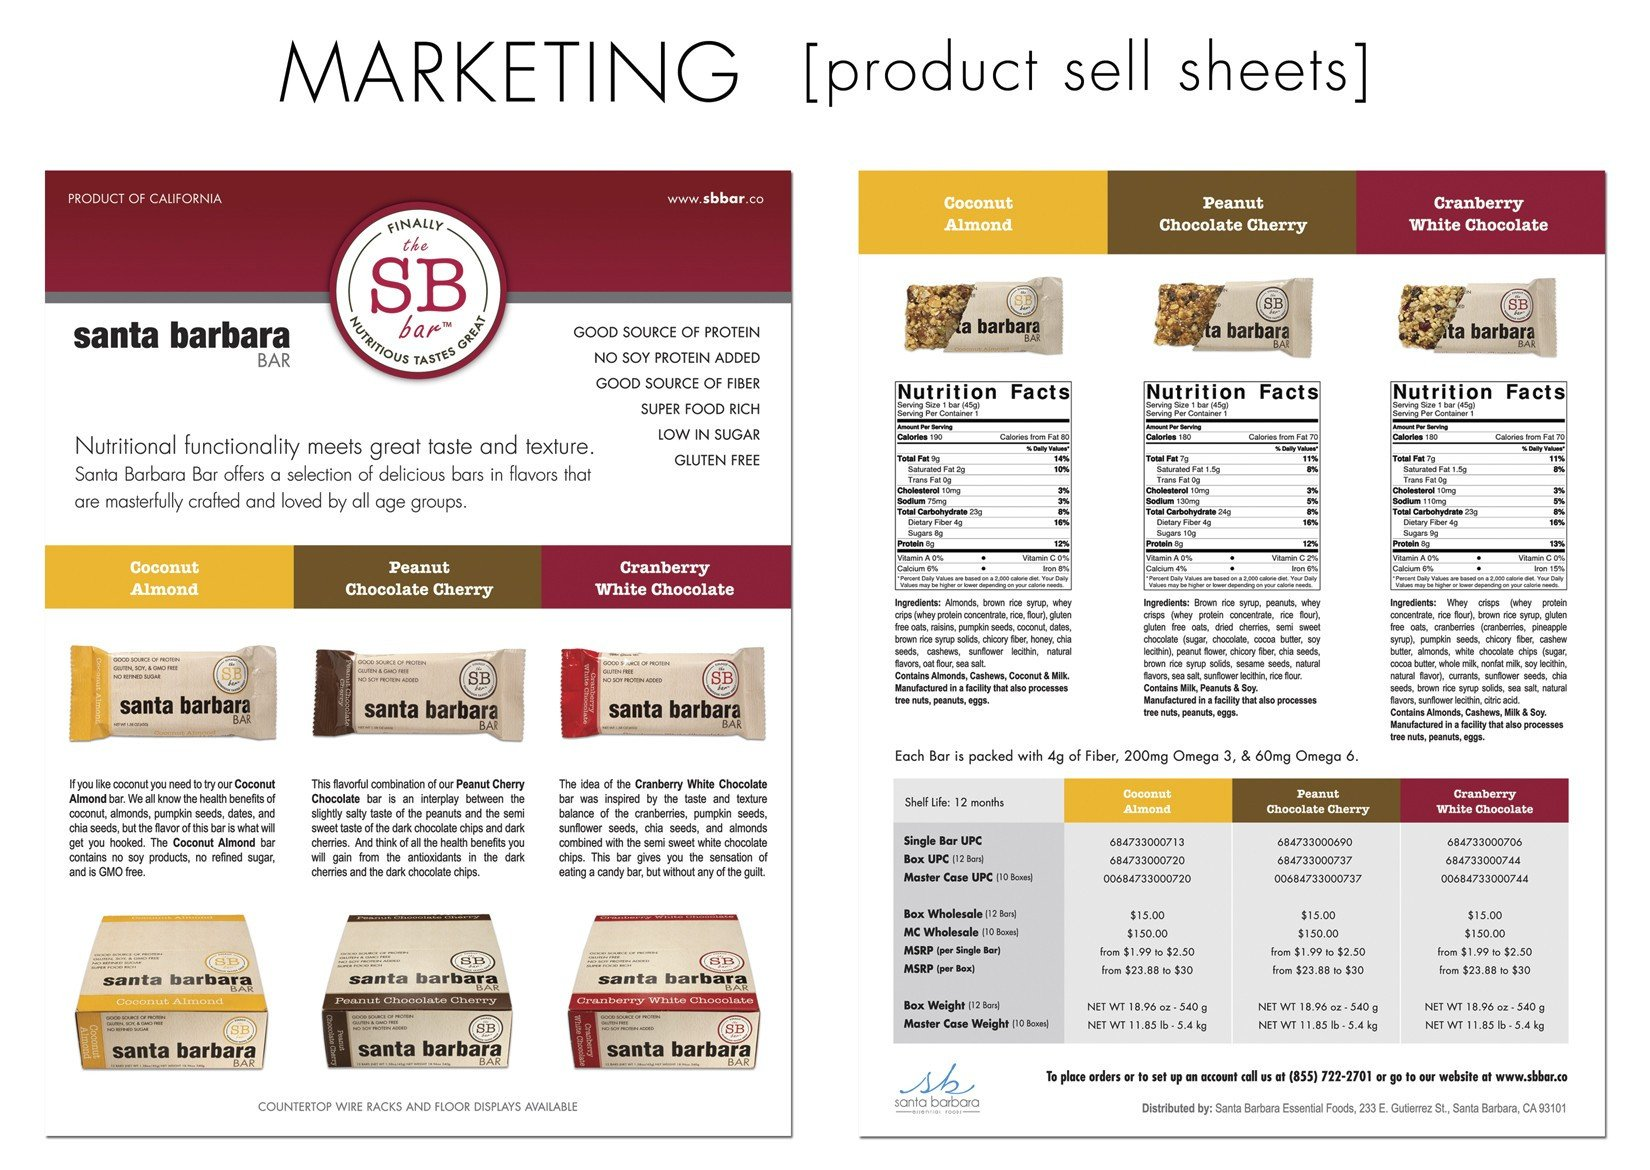 Product Sell Sheet Template Graphic Design In Los Angeles – Marketing and Advertising